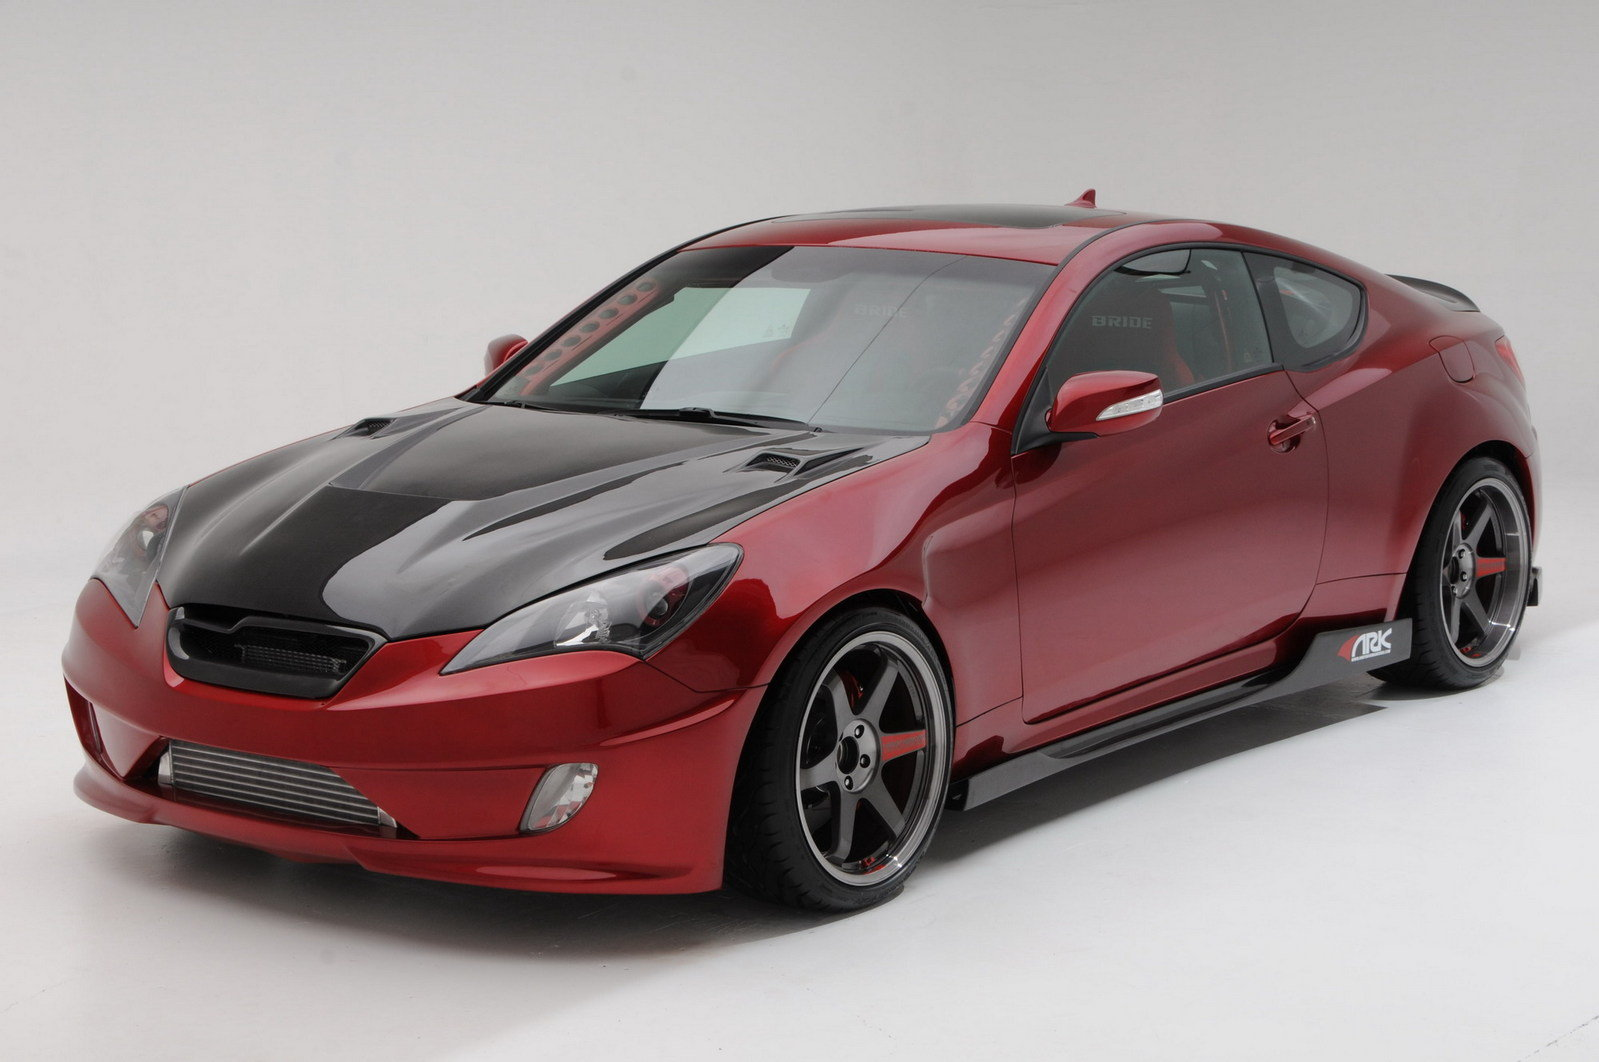 2010 hyundai genesis coupe by ark picture 379932 car review top speed. Black Bedroom Furniture Sets. Home Design Ideas